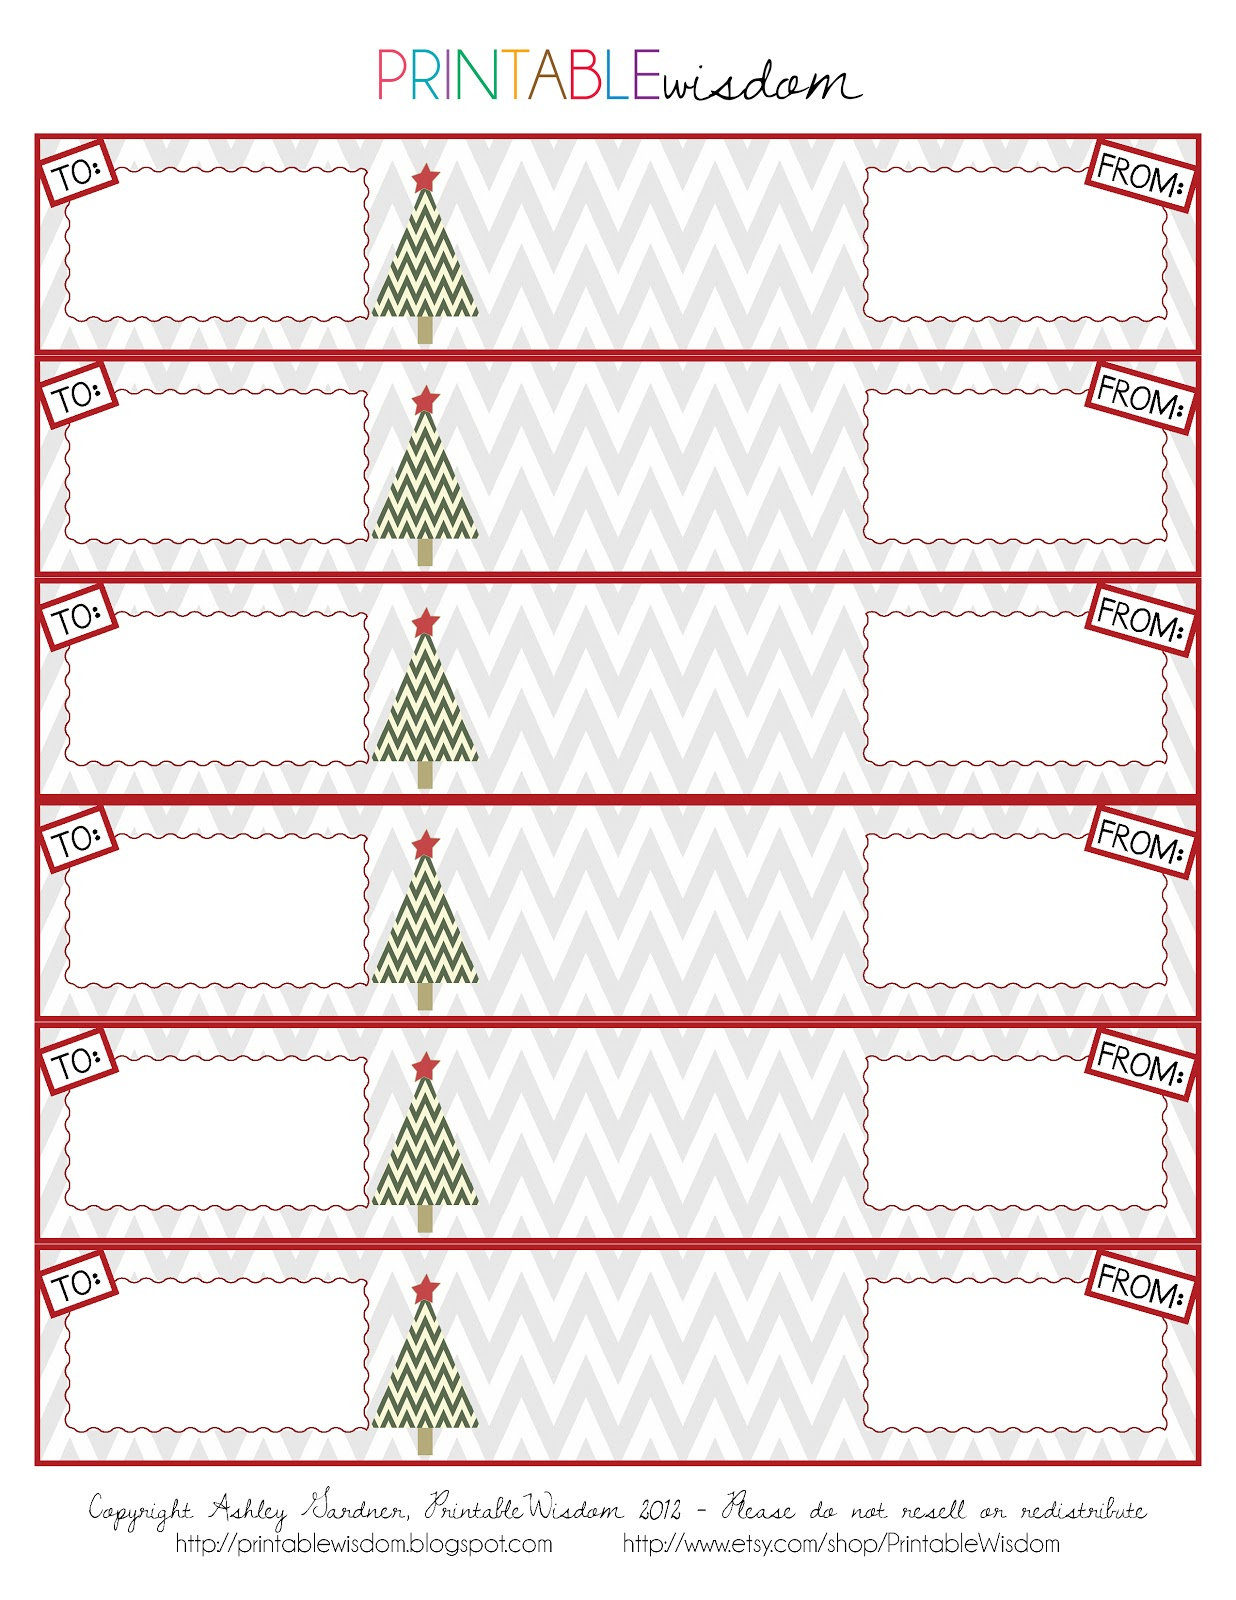 012 Template Ideas Address Label Templates Free Printable Christmas - Free Printable Christmas Return Address Label Template